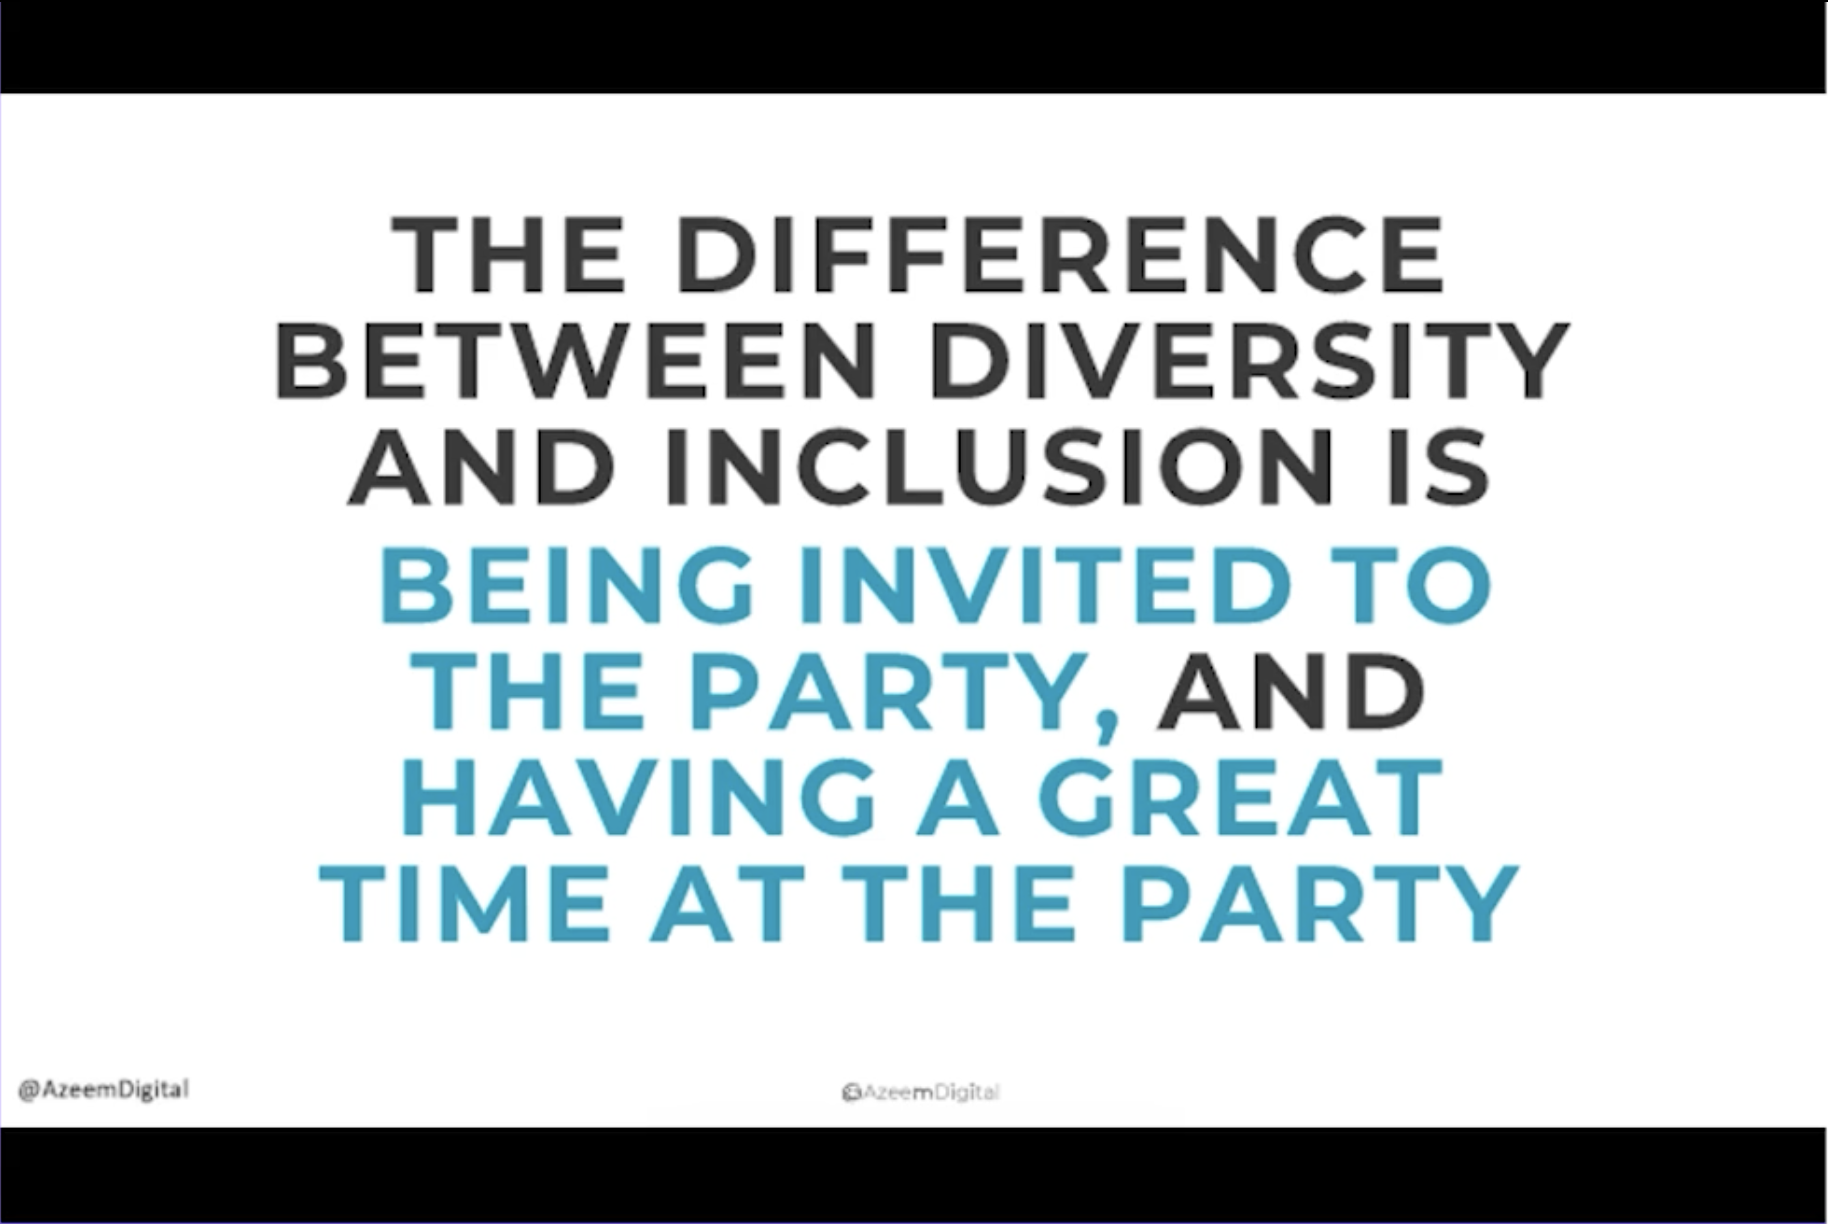 the difference between diversity and inclusion